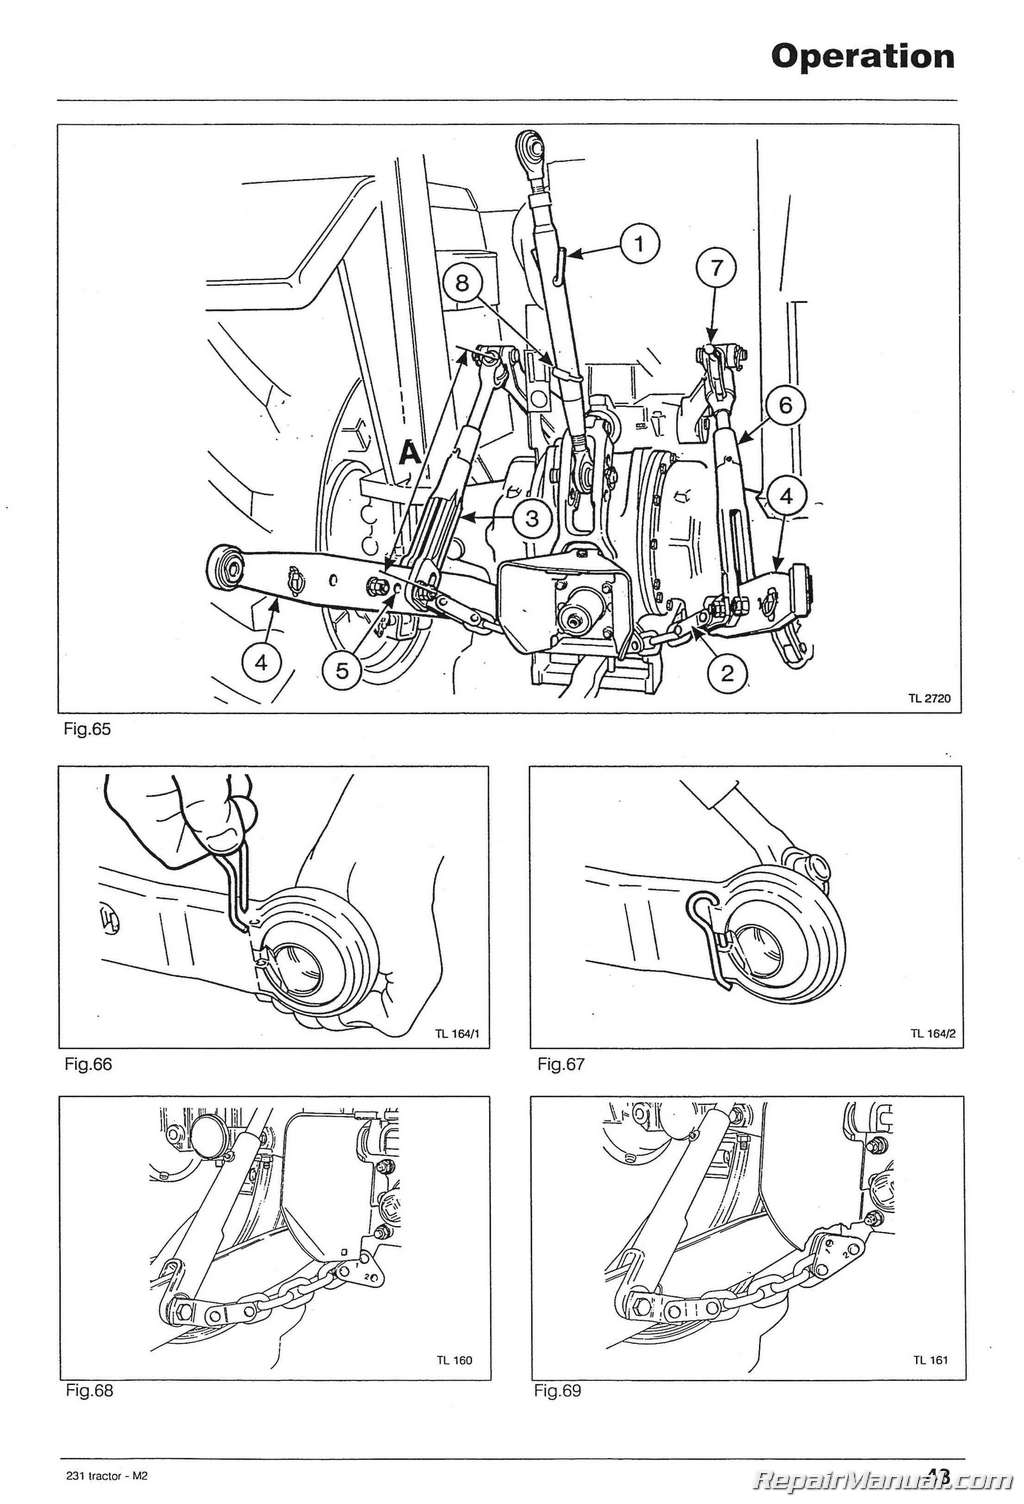 massey ferguson 165 parts diagram corsa d headlight wiring 231 tractor operator instruction book